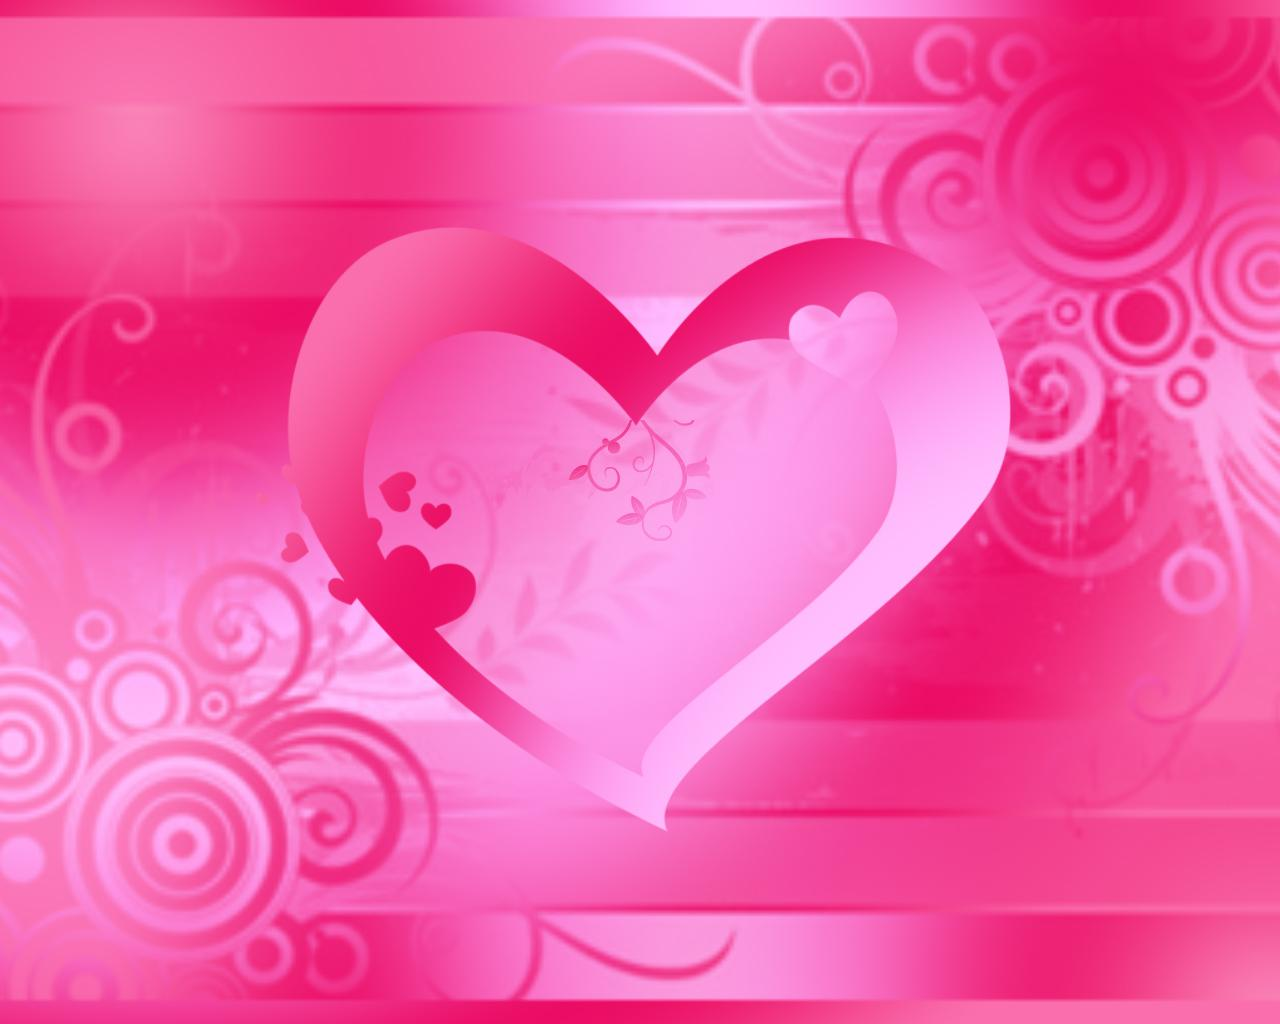 Free Download Touch My Heart 25 Beautiful Pink Heart Wallpapers 1280x1024 For Your Desktop Mobile Tablet Explore 70 Pink Hearts Backgrounds Heart Background Wallpaper Cute Pink Heart Wallpaper Pink Heart Background Wallpaper